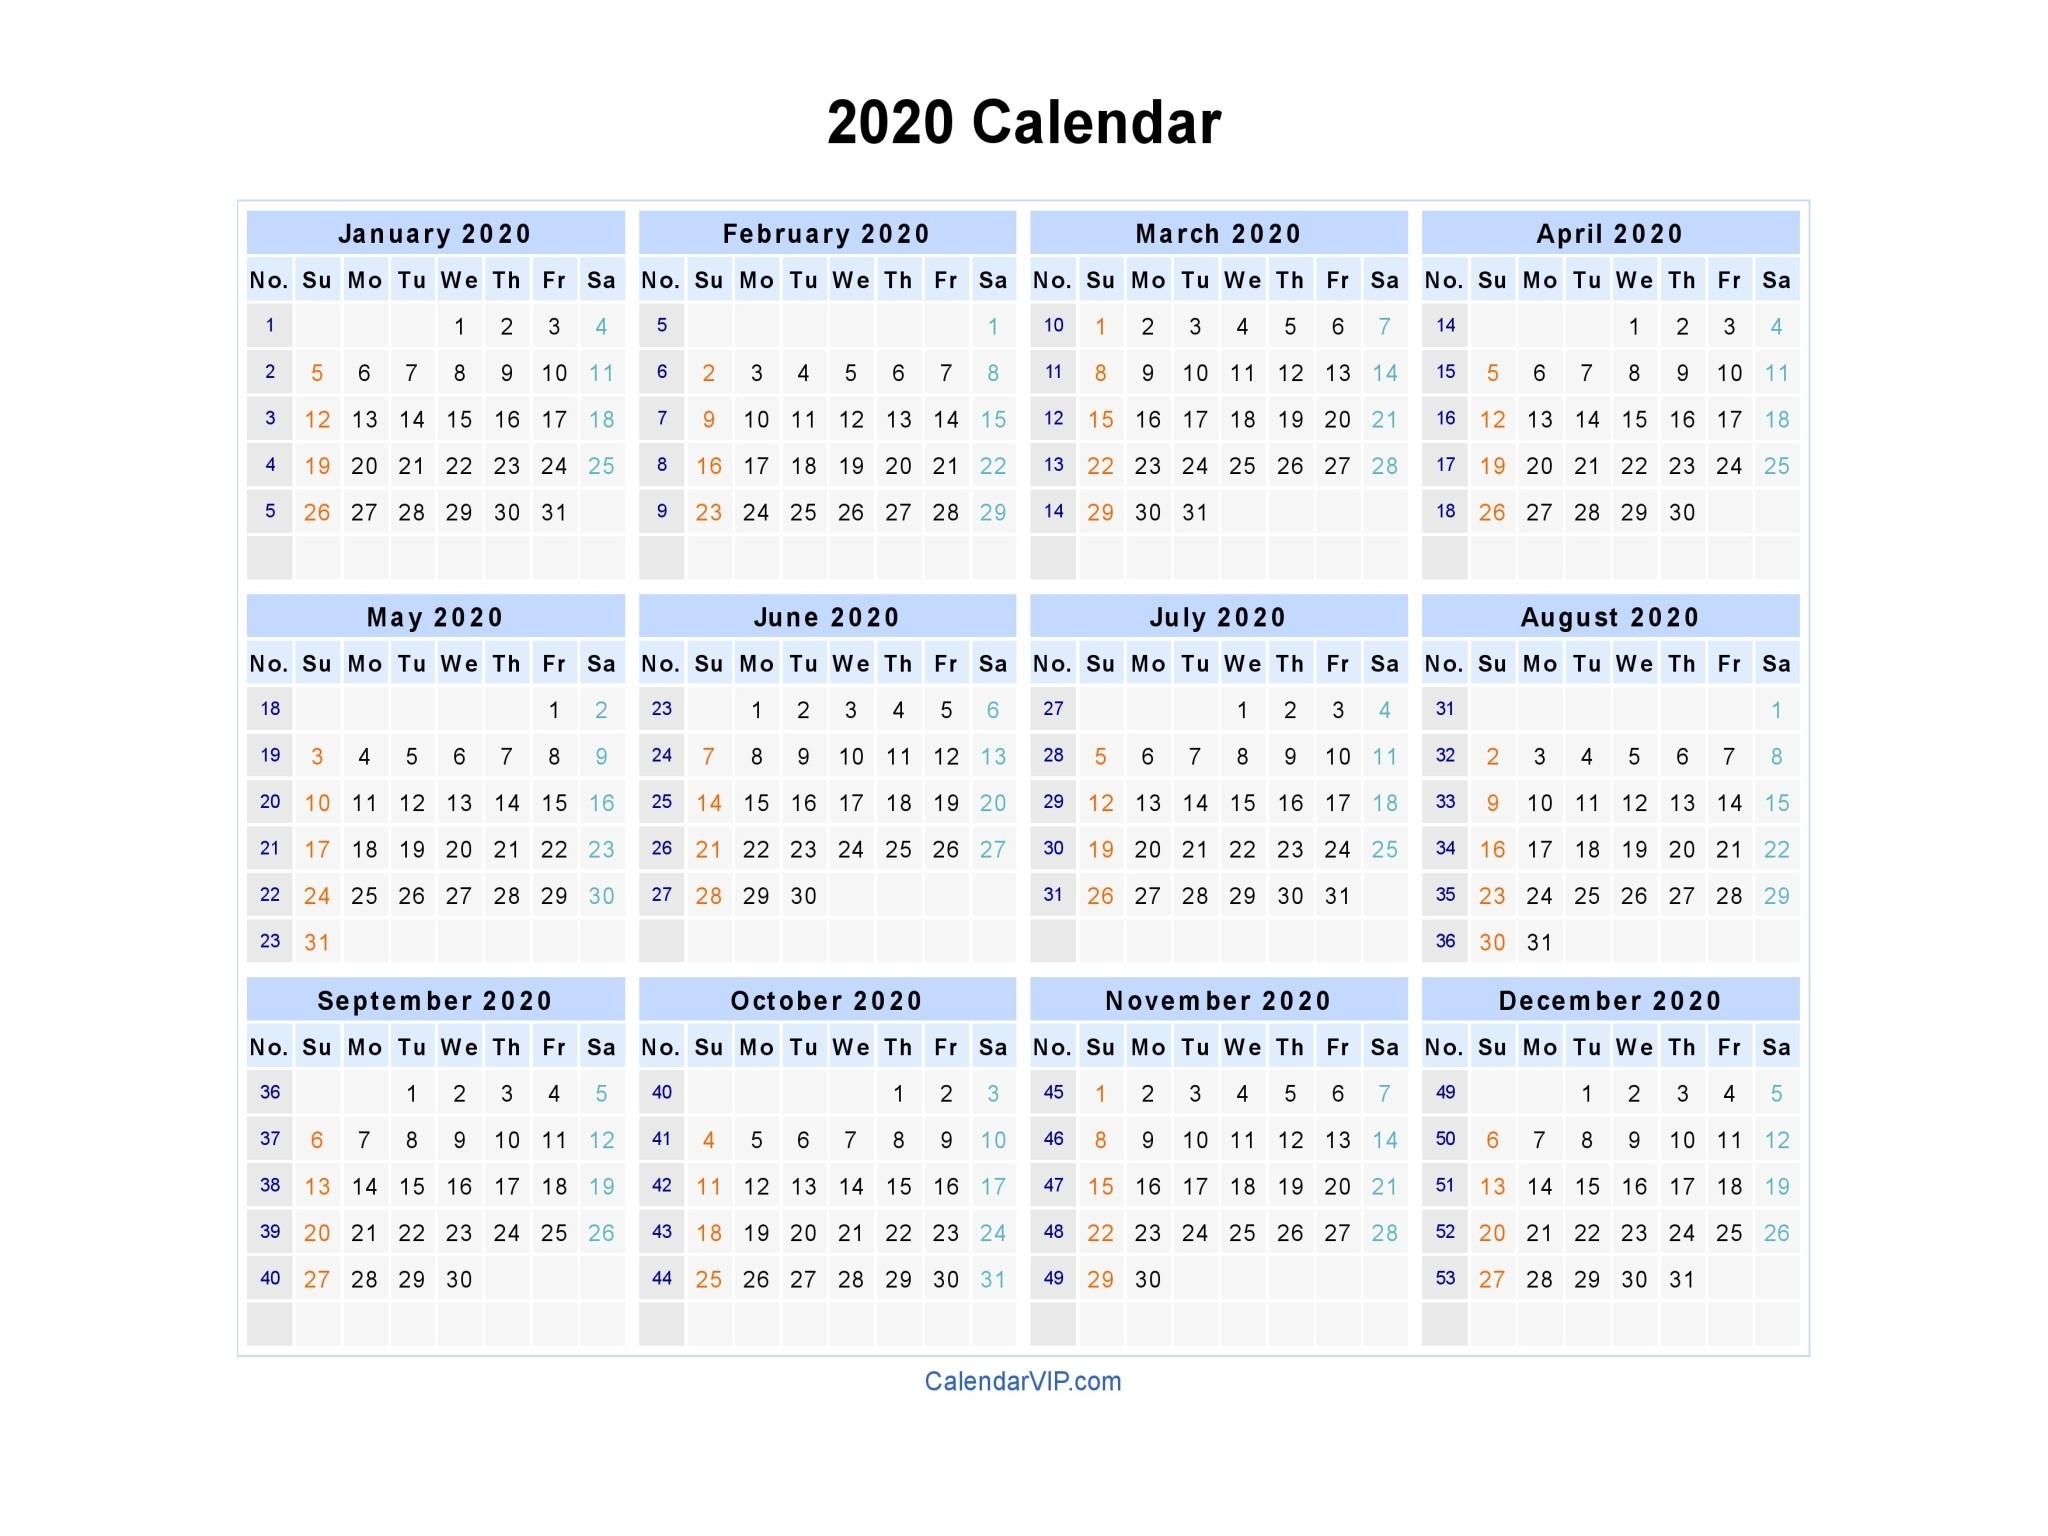 2020 Calendar - Blank Printable Calendar Template In Pdf-Monthly Photo 2020 Calendar Template Printable Psd